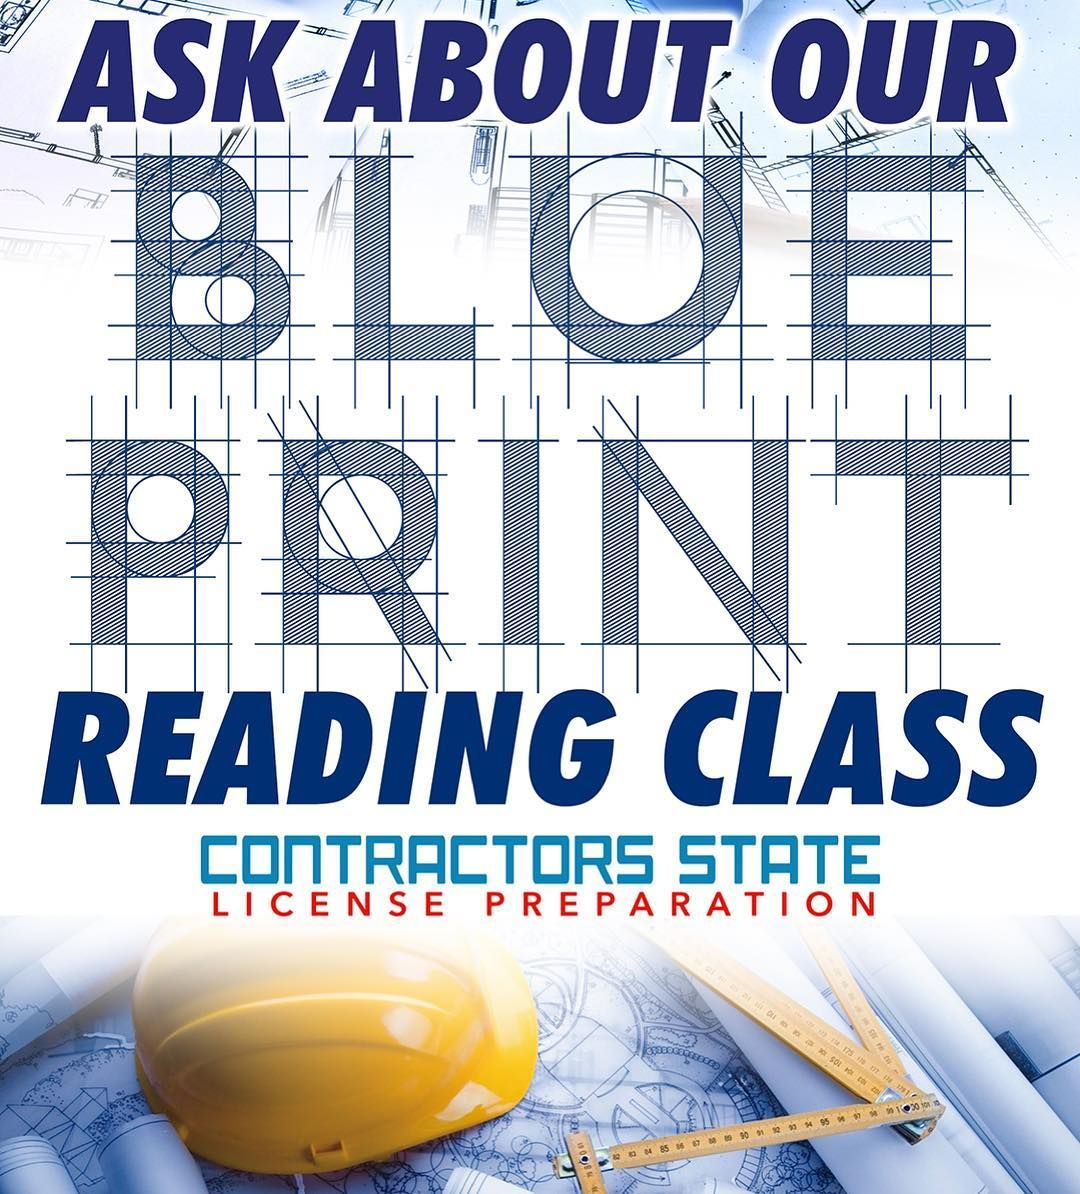 Contractors state license preparation is now offering blue print contractors state license preparation is now offering blue print reading classes malvernweather Choice Image